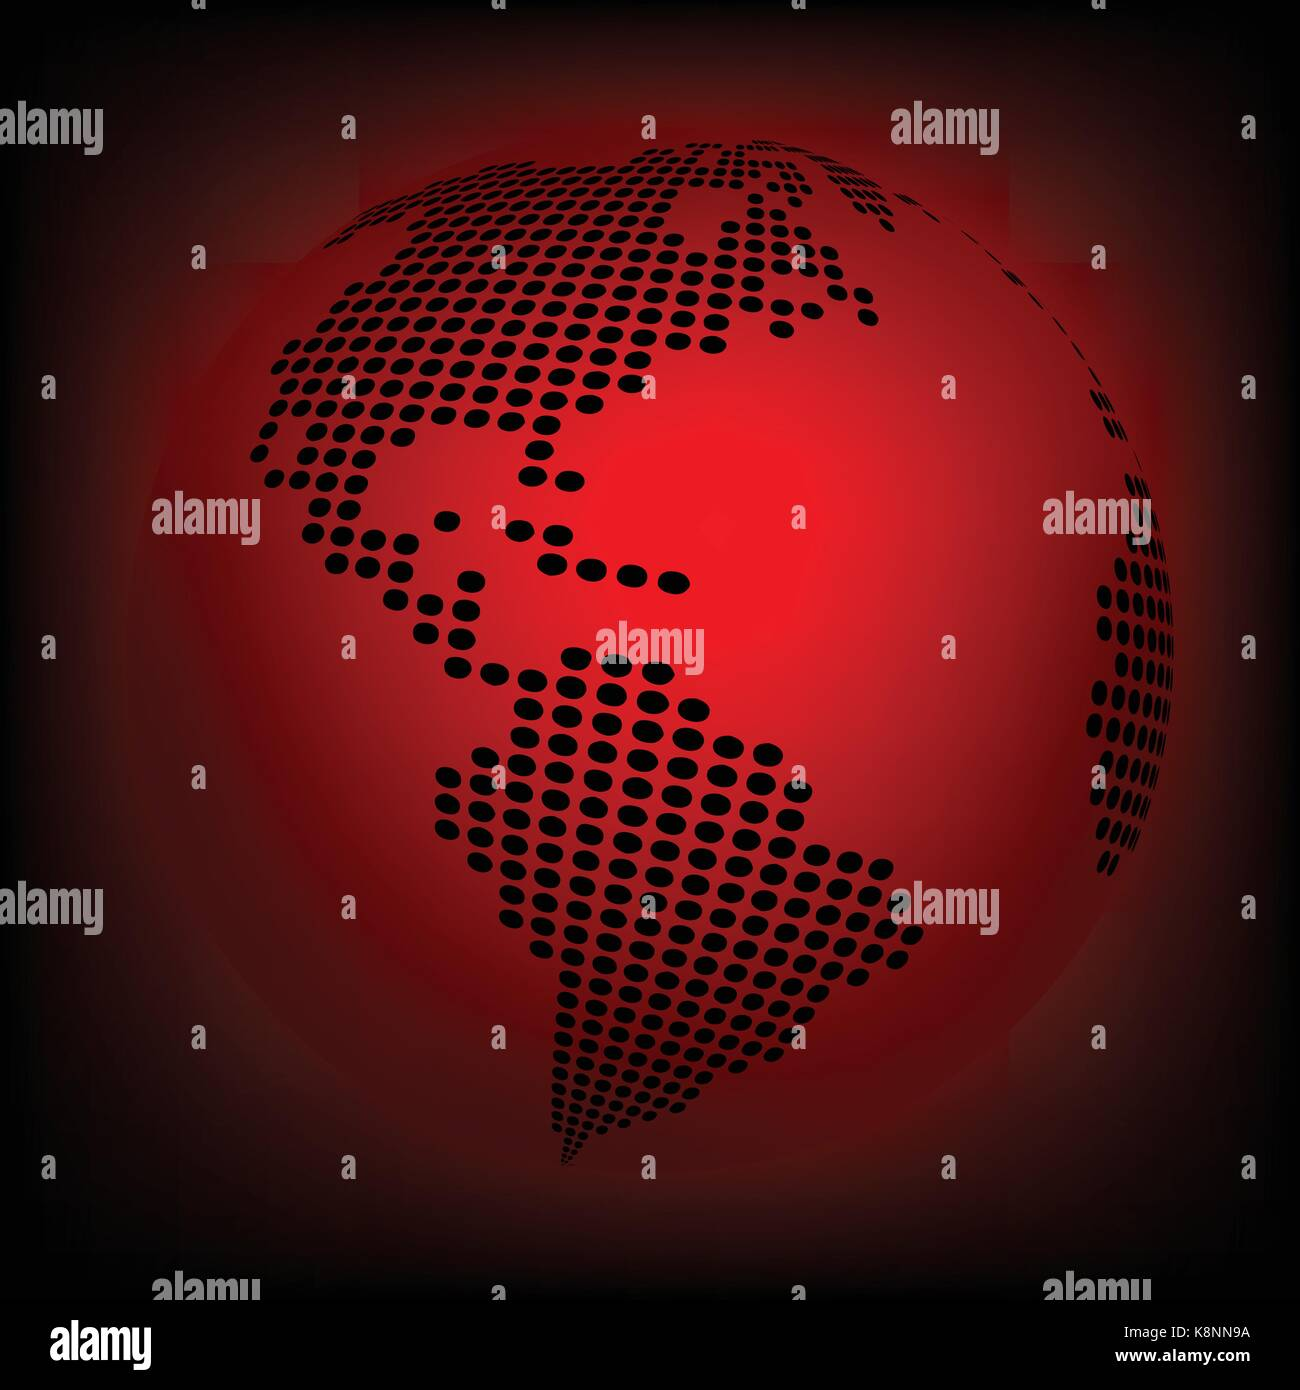 Globe earth world map abstract dotted vector background red stock globe earth world map abstract dotted vector background red wallpaper illustration gumiabroncs Gallery